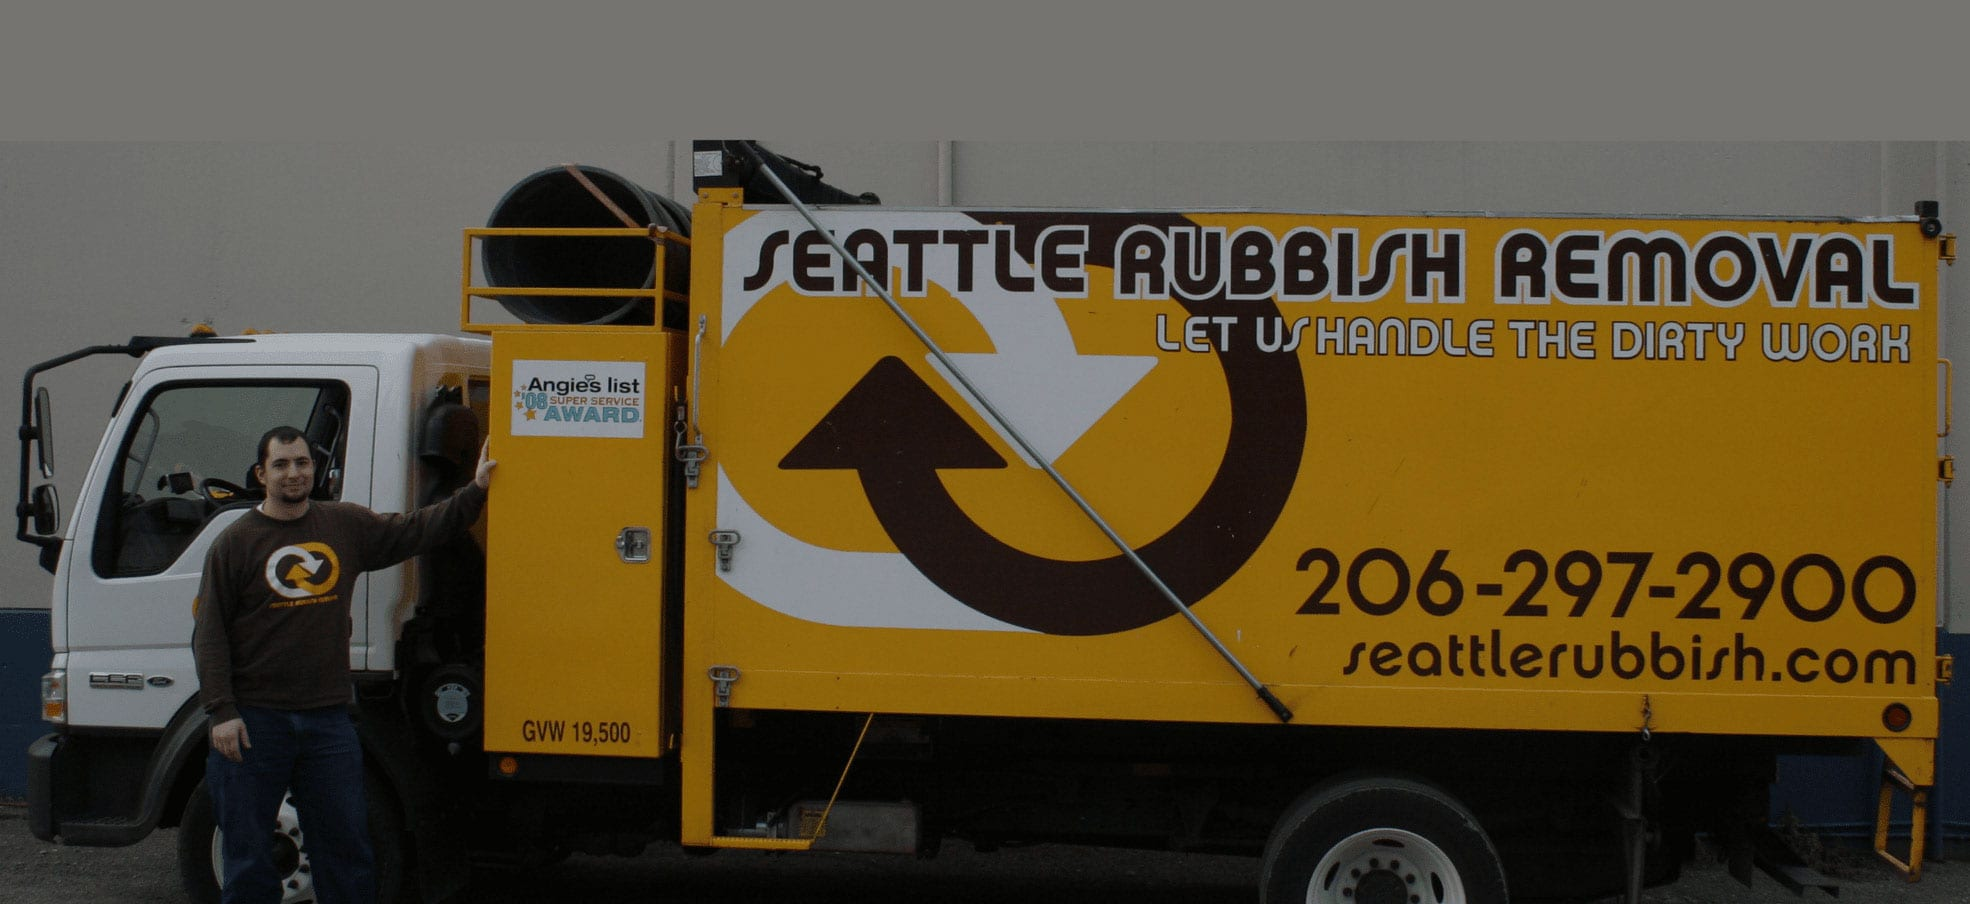 Seattle rubbish removal banner truck